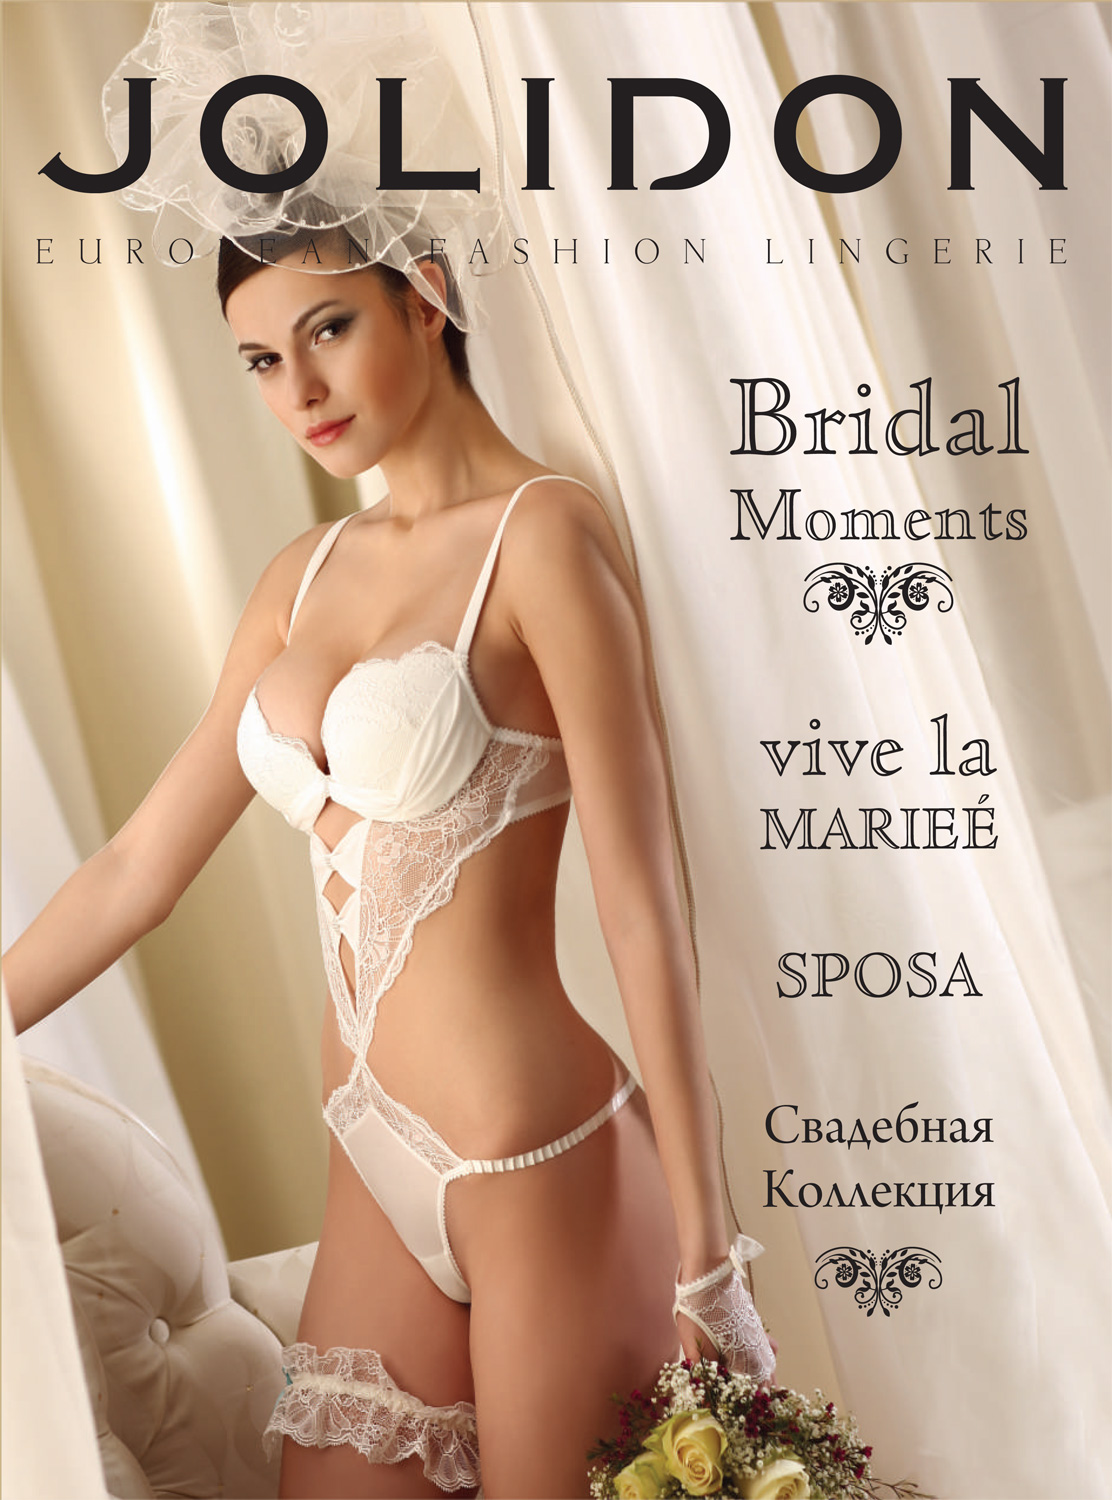 JOLIDON BRIDAL MOMENTS